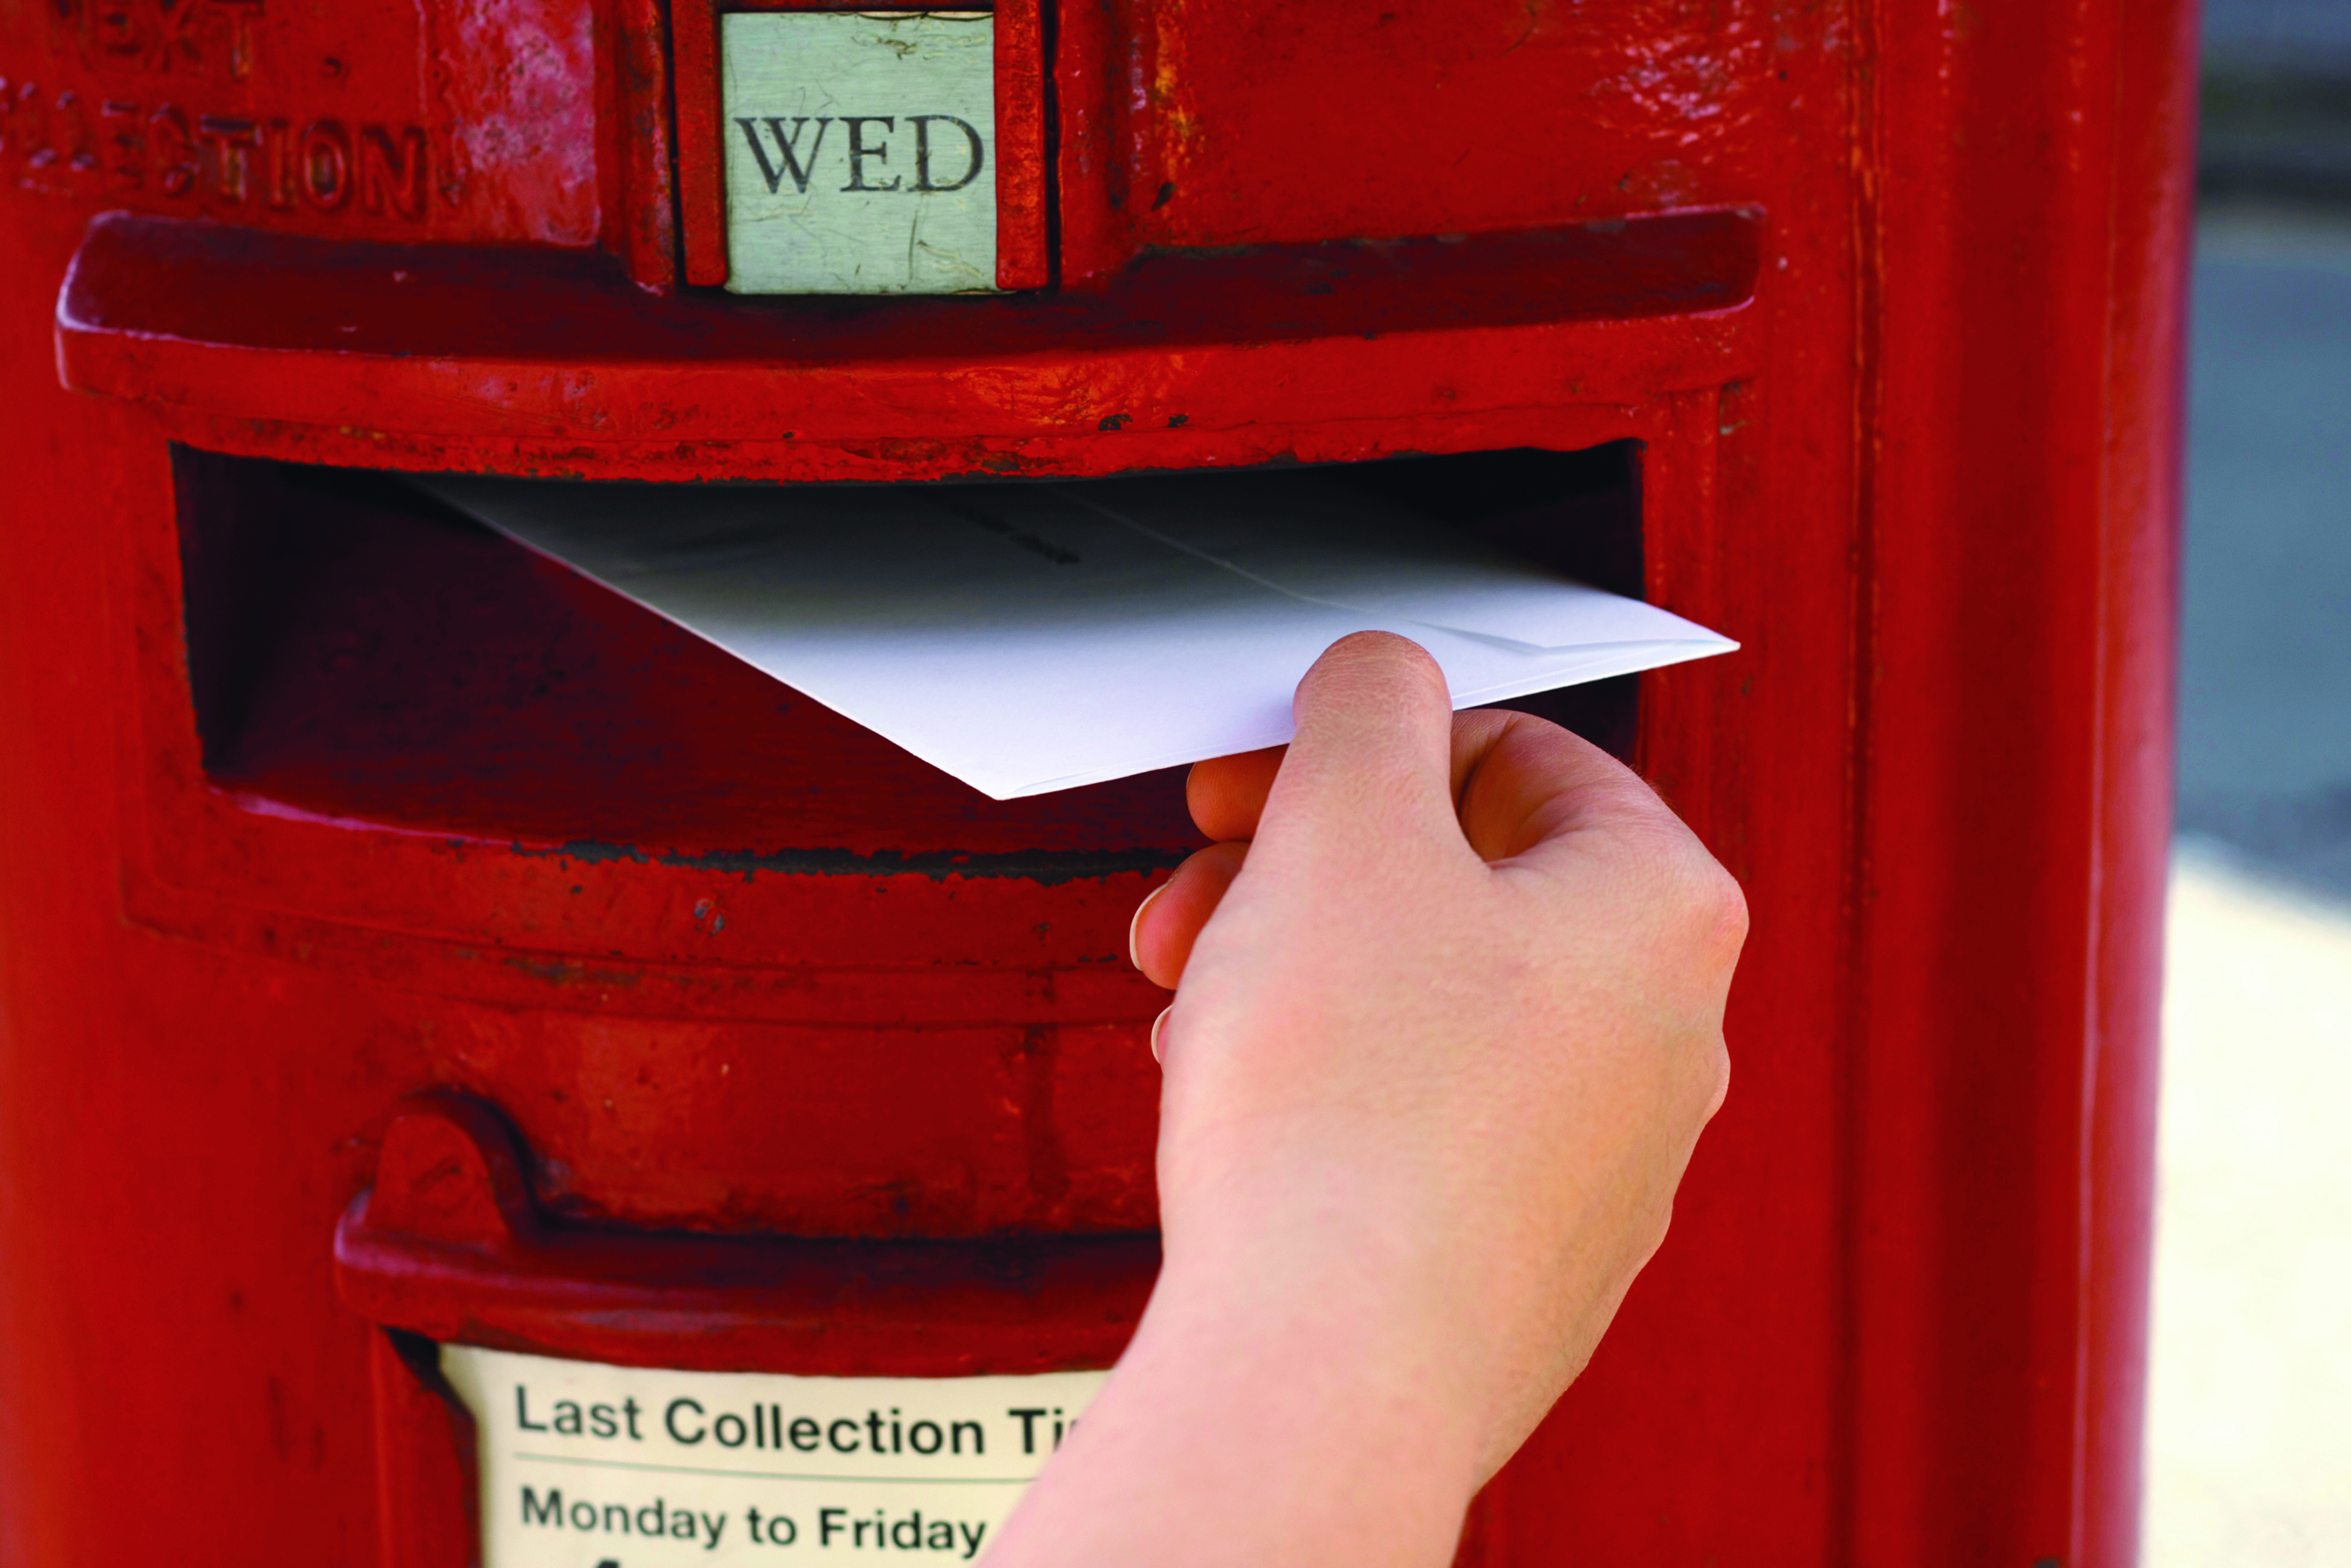 Don't lose your voice - register for a postal vote